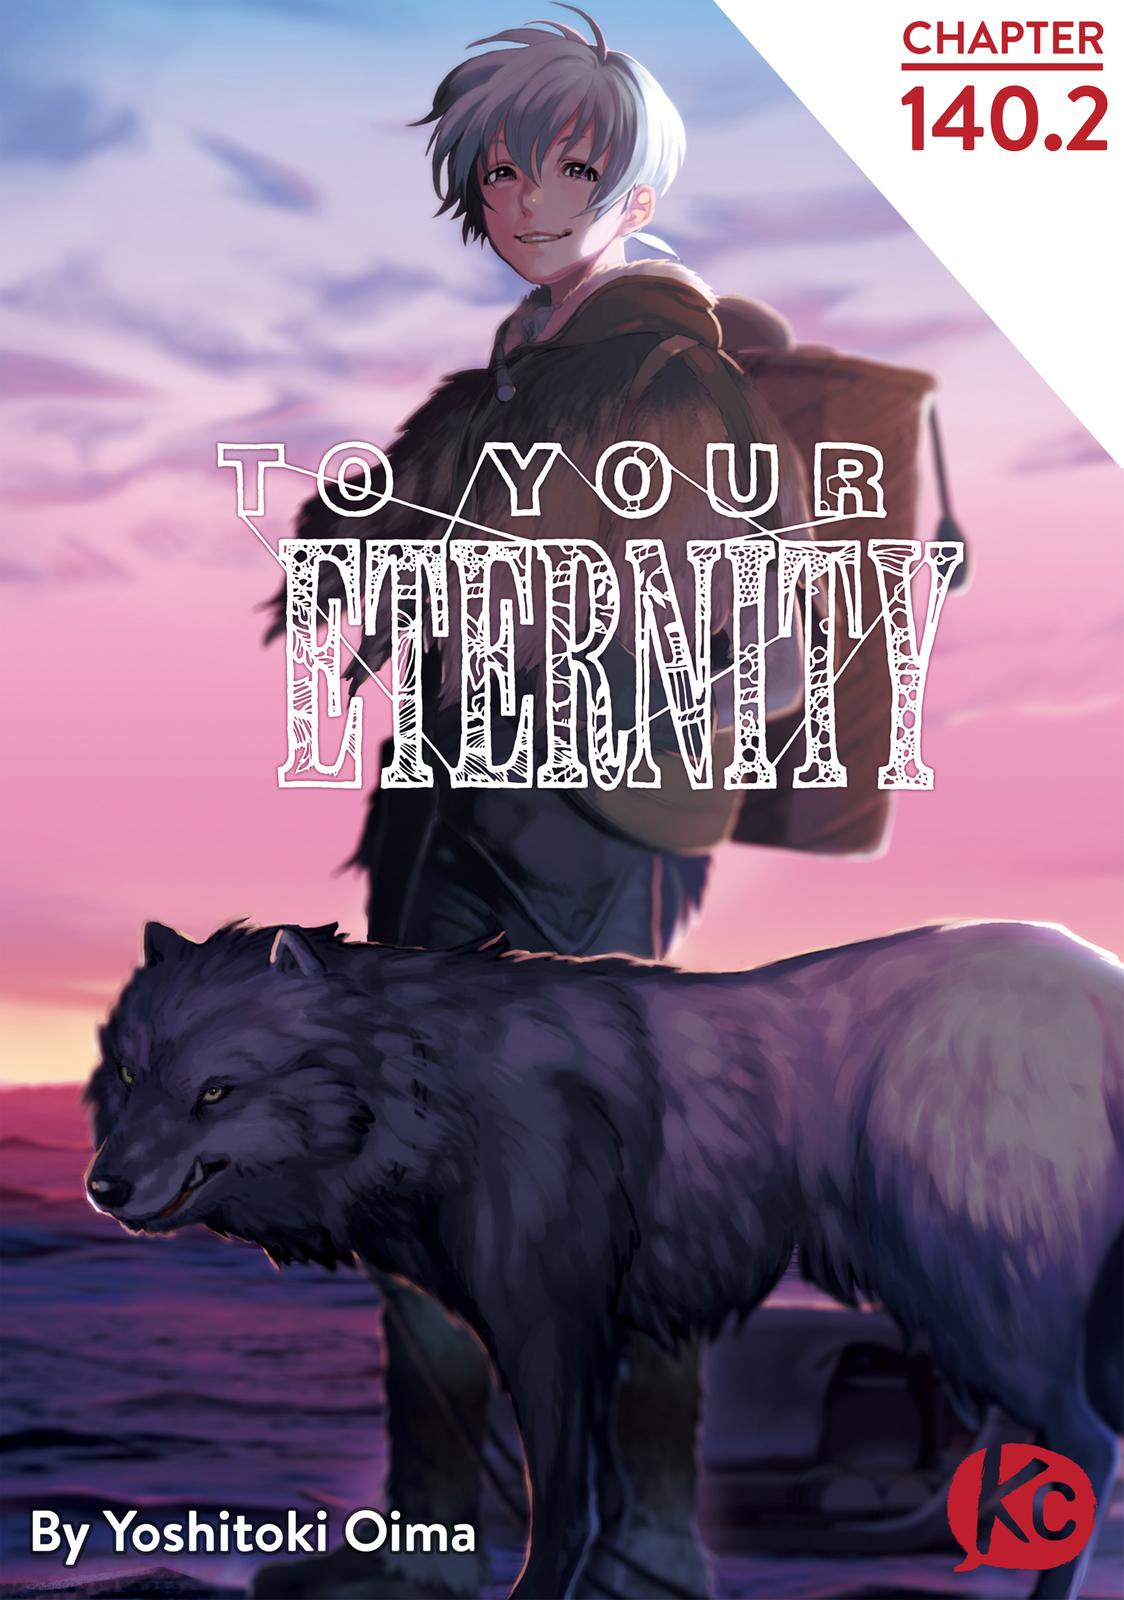 to your eternity, to your eternity manga, read to your eternity, read to your eternity manga, to your eternity anime, to your eternity anime release date, to your eternity wiki, to your eternity characters, to your eternity anime adaptation, to your eternity episode 1, to your eternity fushi, to your eternity review, to your eternity tv tropes, to your eternity myanimelist, to your eternity release date, to your eternity anime episode 1, to your eternity anime studio, to your eternity about, to your eternity amazon, to your eternity anime trailer, to your eternity anime reddit, to your eternity anime characters, to your eternity box set, to your eternity baka, to your eternity barnes and noble, to your eternity buy, to your eternity bon, to your eternity boy, to your eternity band 11, to your eternity band 3, but steps to your eternity meaning, to your eternity band 12, to your eternity crunchyroll, to your eternity chapter, to your eternity cast, to your eternity comixology, to your eternity comic, to your eternity cover, fumetsu no anata e wiki, fumetsu no anata e mal, fumetsu no anata e voice actor, fumetsu no anata e delayed, fumetsu no anata e crunchyroll, fumetsu no anata e 120, read Fumetsu no Anata e, Fumetsu no Anata e manga, to your eternity dub, to your eternity discussion, to your eternity delay, to your eternity danke empire, to your eternity deutsch, to your eternity episode 1 release date, to your eternity nombre de tomes, to your eternity anime date, to your eternity ep 1, to your eternity ending, to your eternity eko, to your eternity episodes, to your eternity english, to your eternity español, to your eternity egmont, to your eternity manga ending,